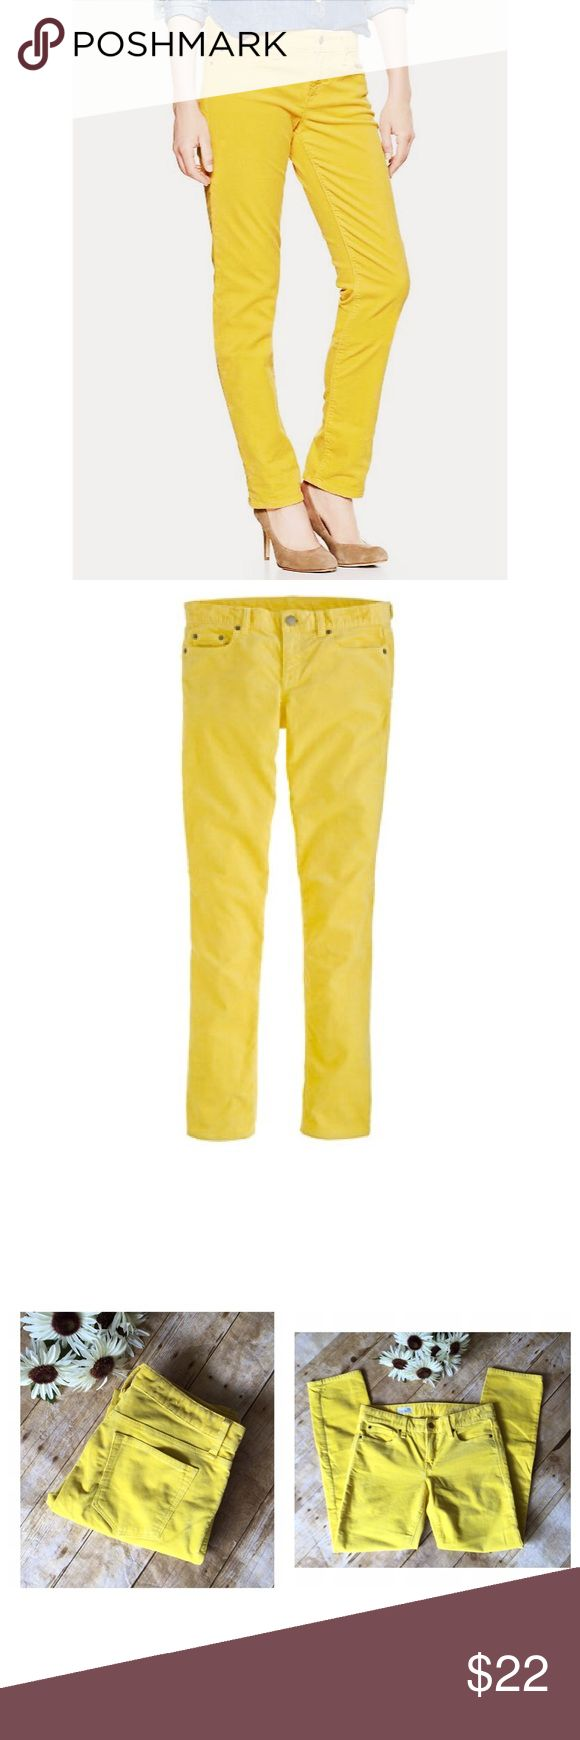 GAP Real Petite Corduroy Pant in Canary Yellow GAP Corduroy pants in a fun canary yellow color & a straight leg fit. This are in excellent condition & a great addition to brighten up your fall/winter wardrobe! NO TRADES OR PAYPAL! GAP Pants Straight Leg